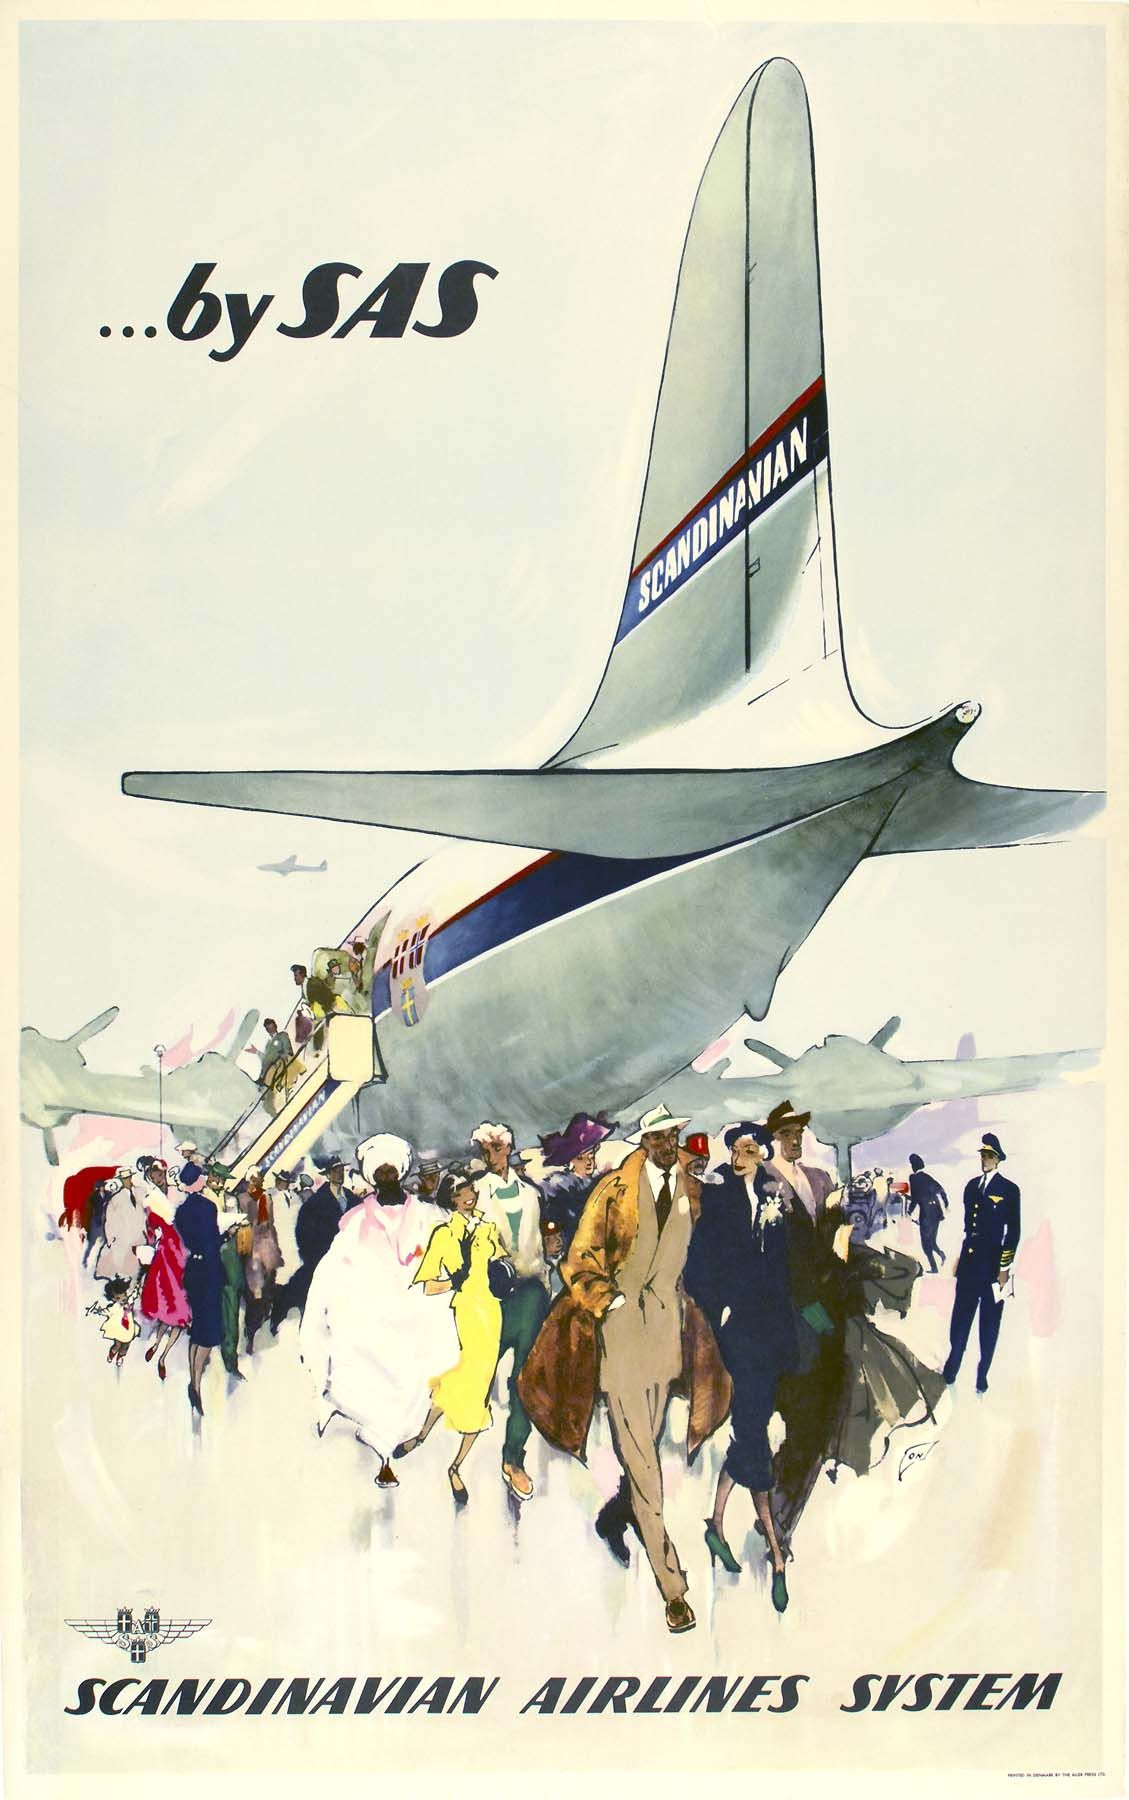 South Africa 1960 Vintage Poster Print Retro Style Airline Retro Travel Art